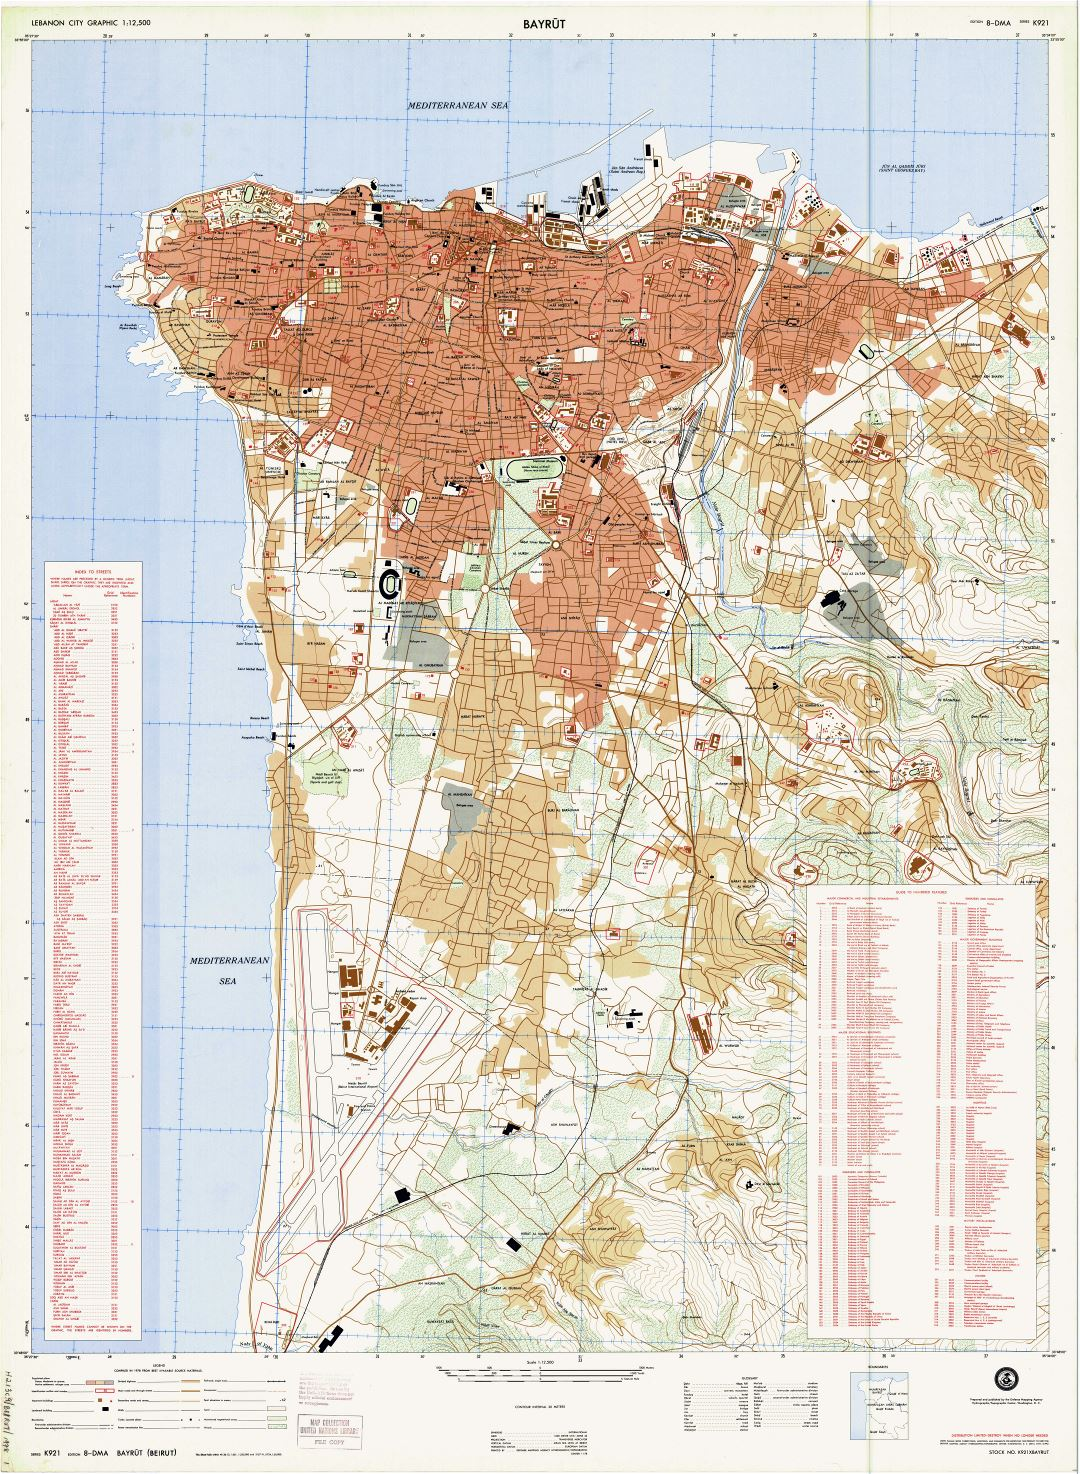 Large scale detailed road map of Beirut city with street names - 1978